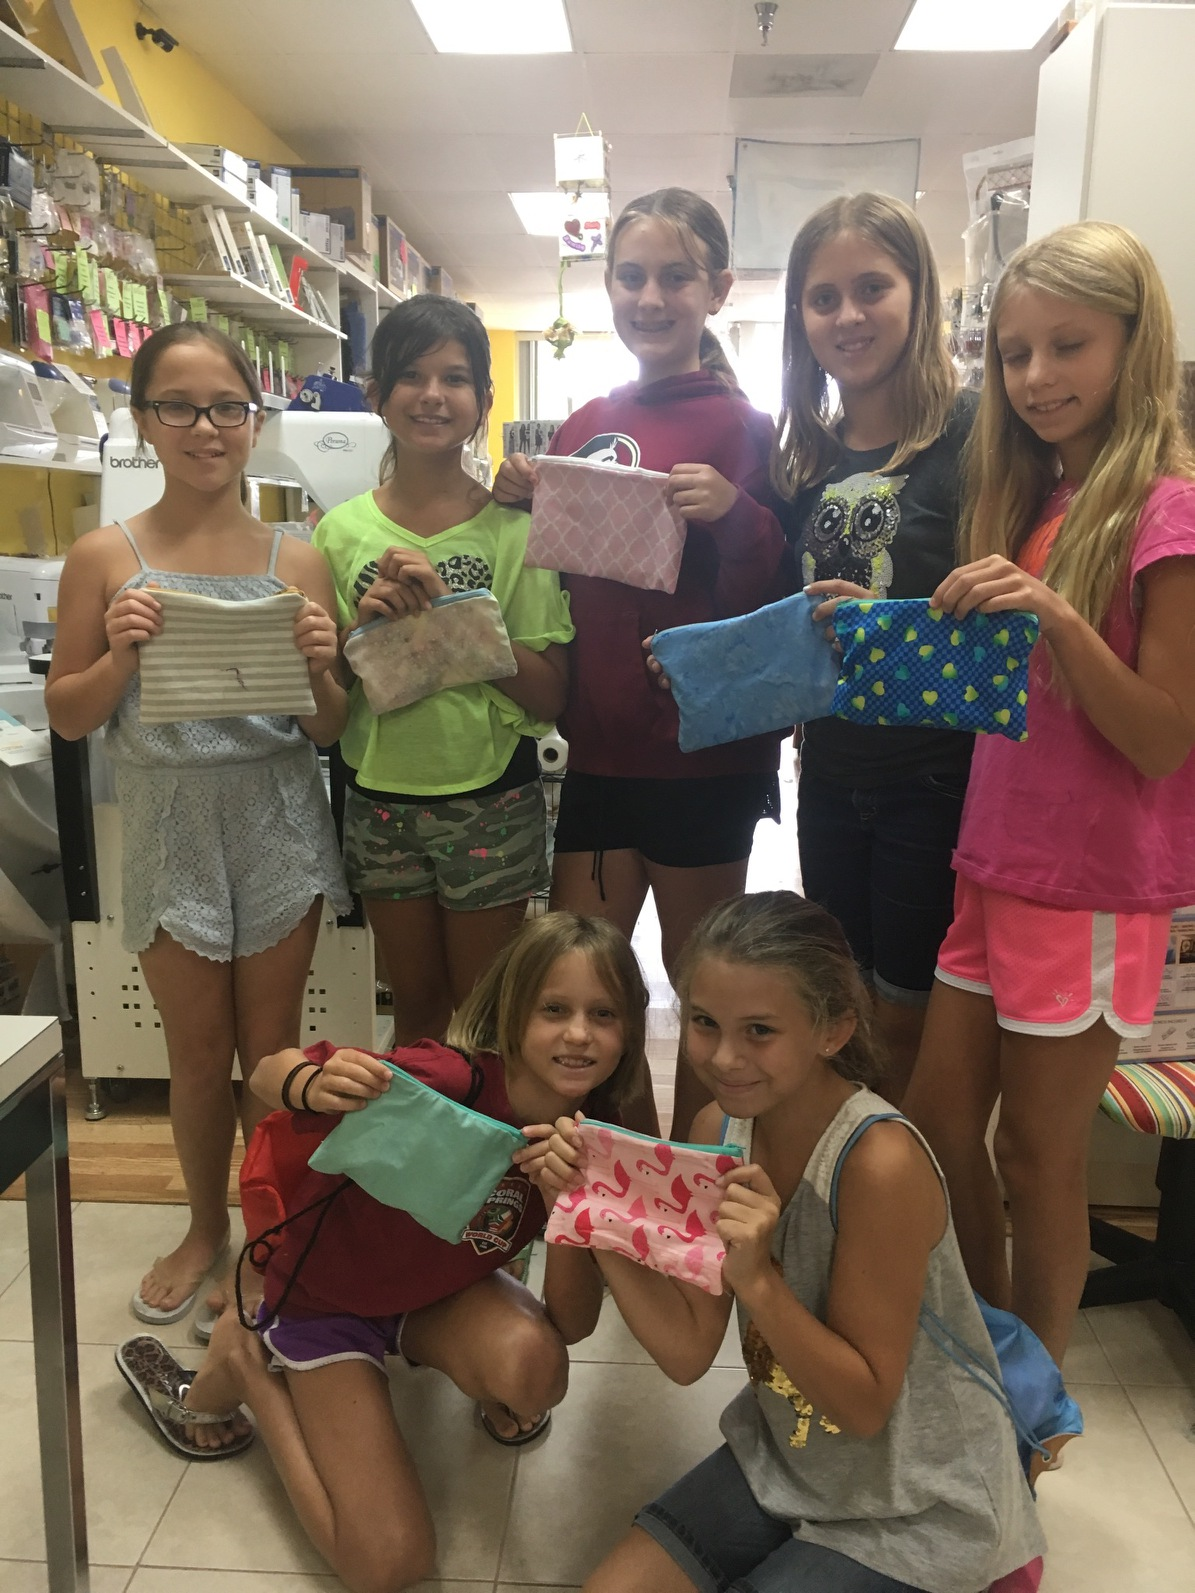 This group of young ladies, all made zippered bags during a private lesson with Miss Lori